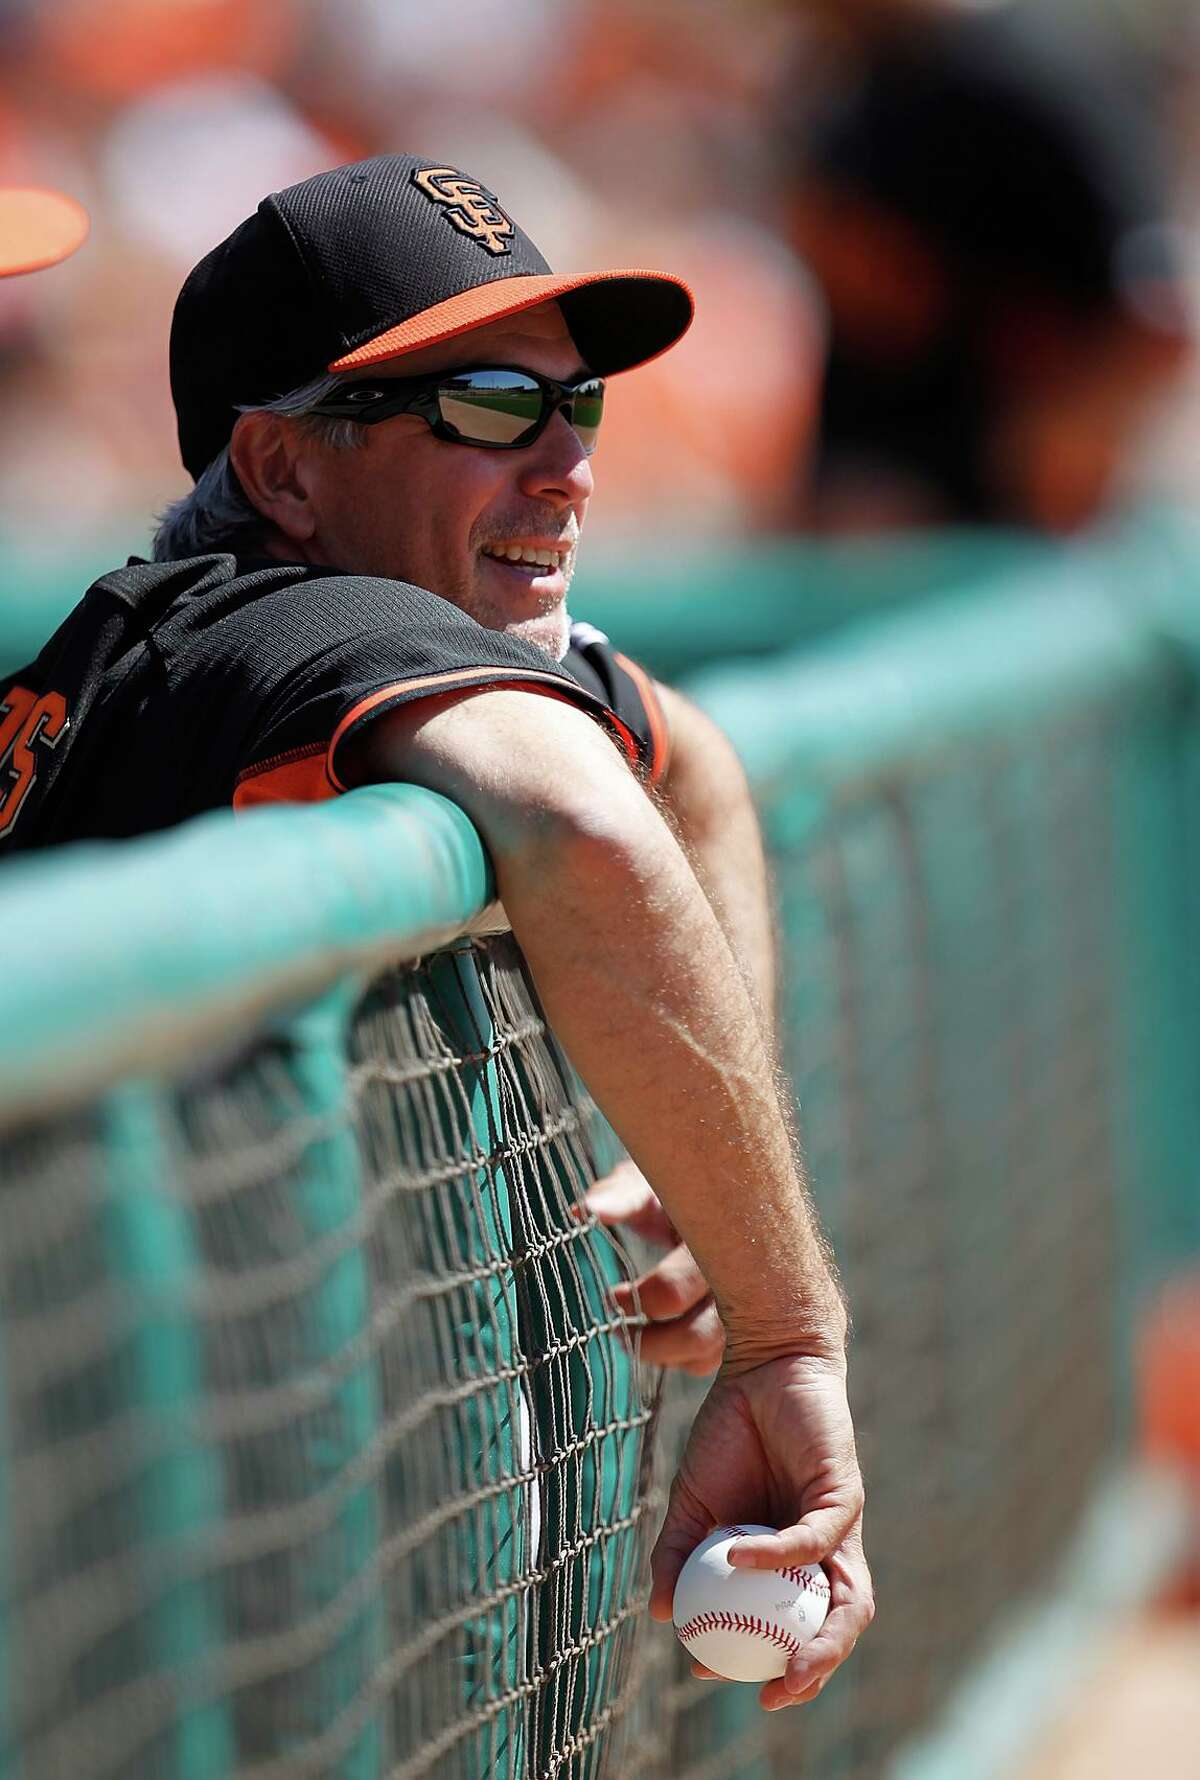 GLENDALE, AZ - MARCH 22: Bench Coach Ron Wotus #23 of the San Francisco Giants looks on before a spring training game against the Chicago White Sox at Camelback Ranch on March 22, 2014 in Glendale, Arizona. The San Francisco Giants defeated the Chicago White Sox 8-5. (Photo by Sarah Glenn/Getty Images)